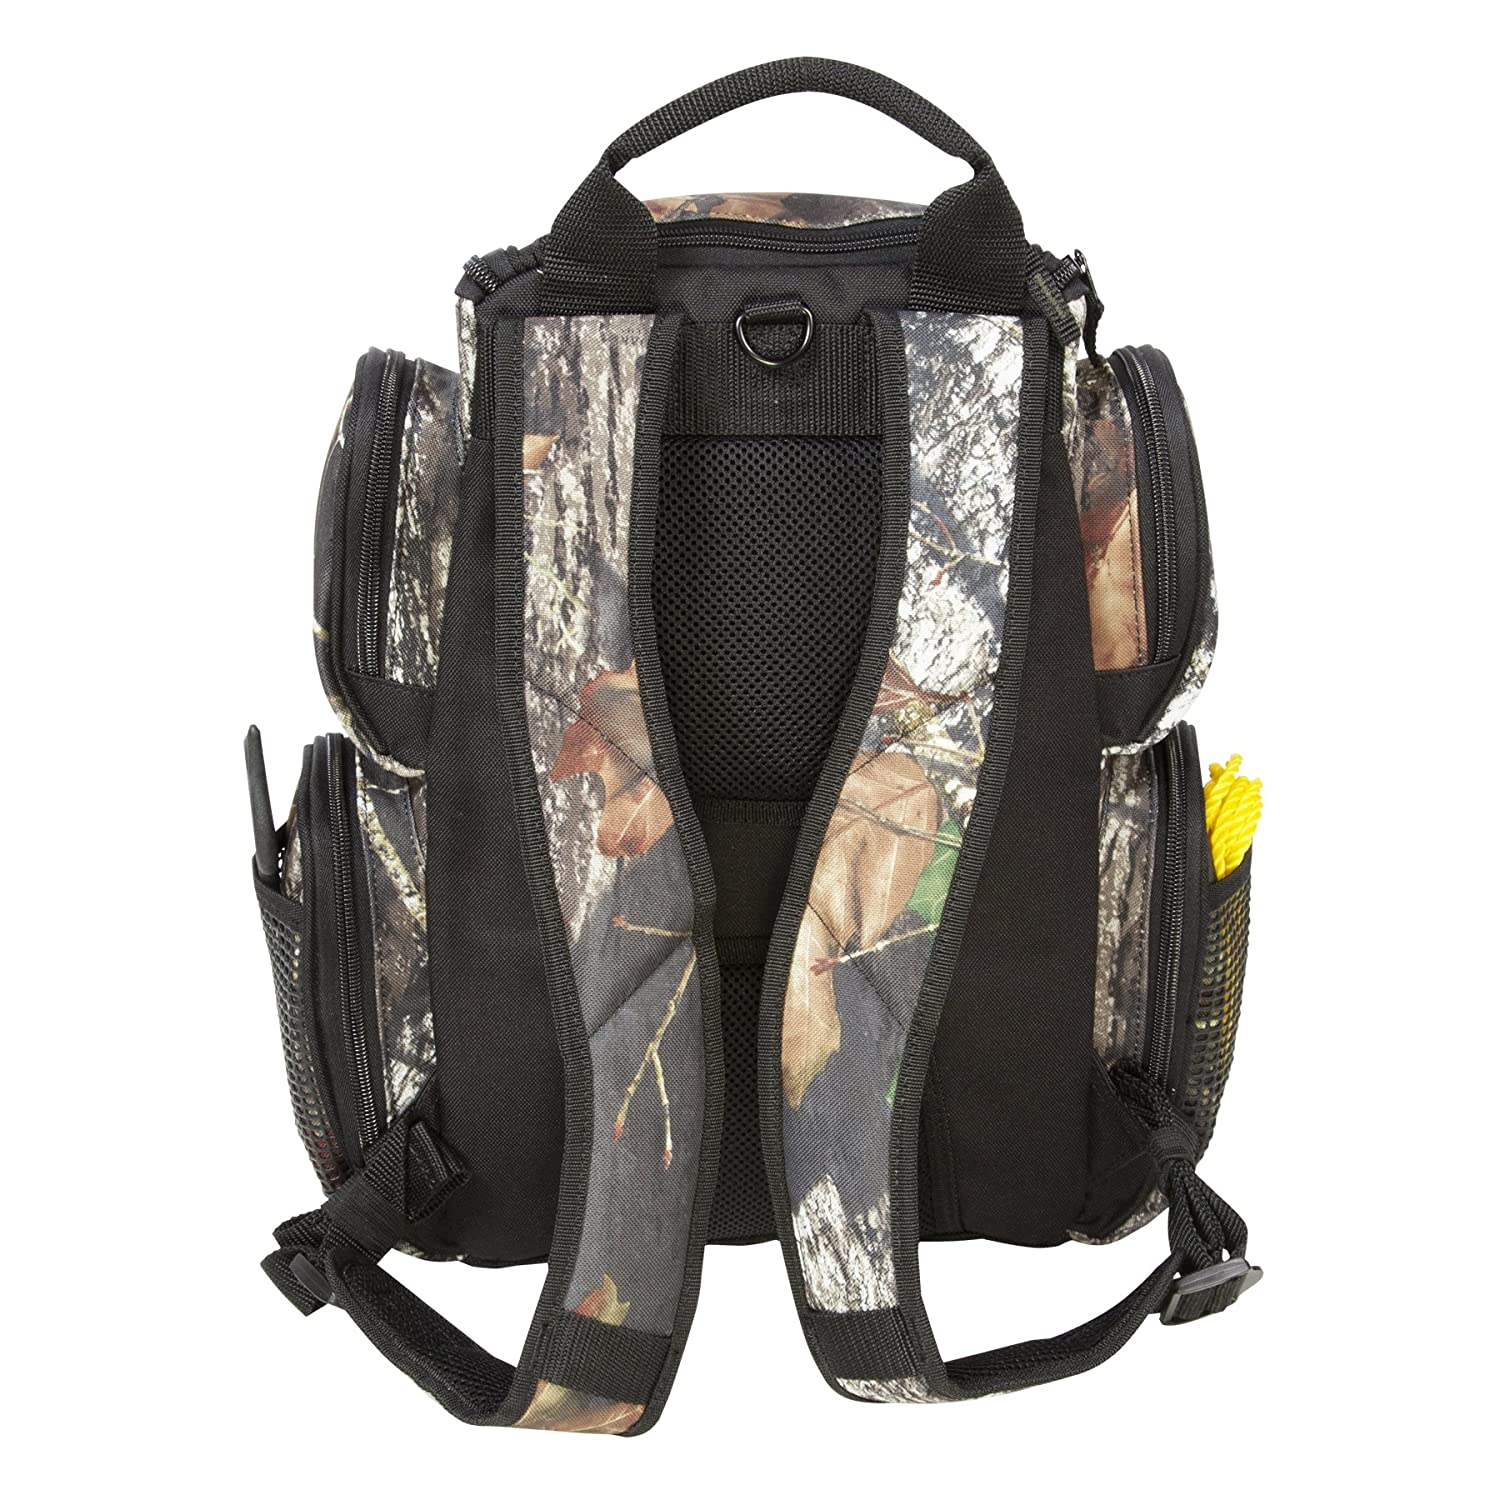 Wild River by CLC 503 Tackle Tek Recon LED-beleuchteten LED-beleuchteten LED-beleuchteten Camo Compact Backpack, Mossy Oak B00F5EPTNO Tauwerk Vollständige Palette von Spezifikationen 6f65fc